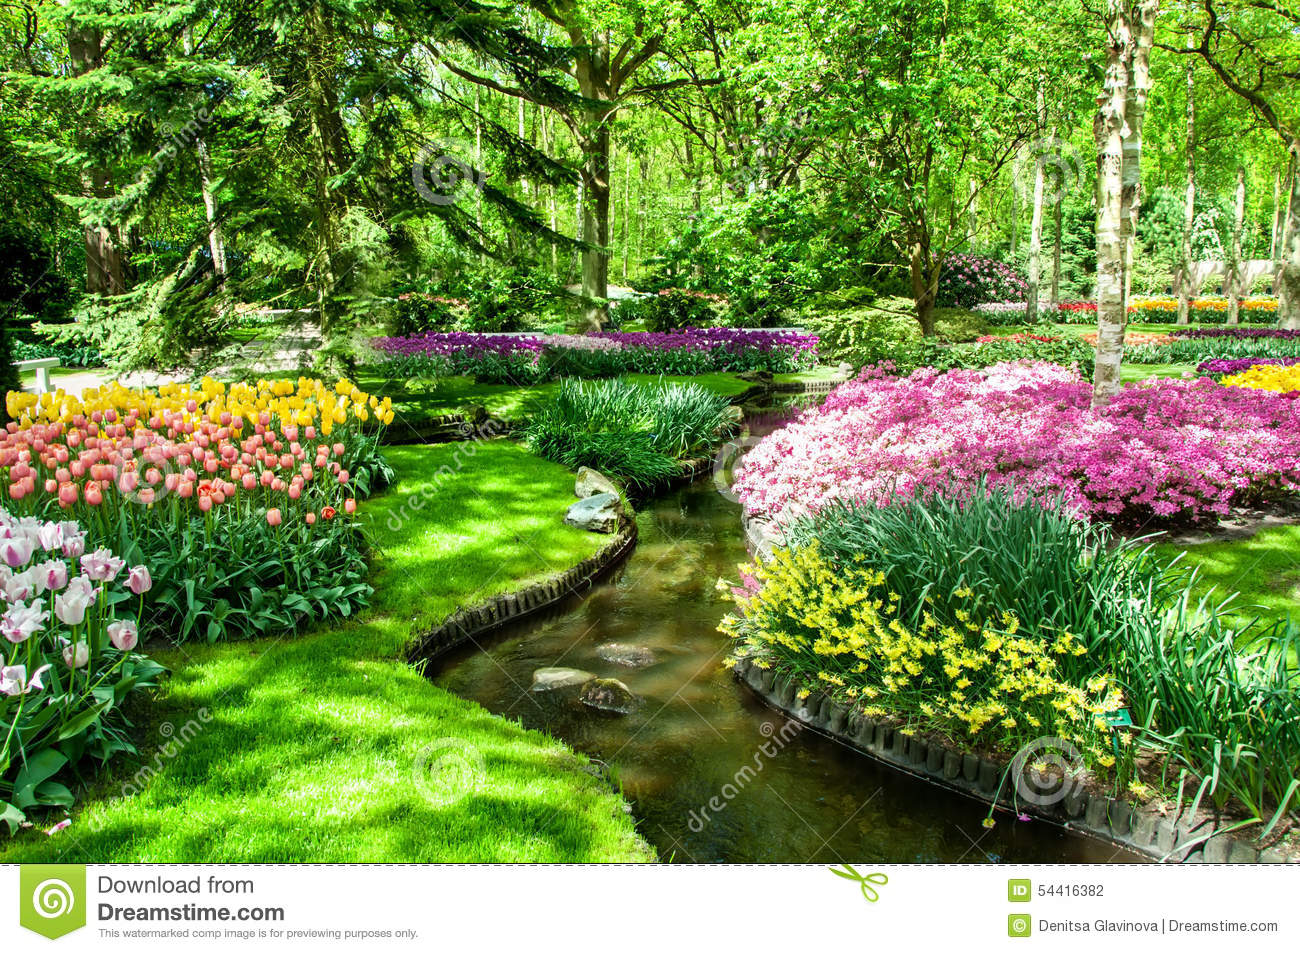 Colorful spring flowers in holland garden keukenhof netherlands download colorful spring flowers in holland garden keukenhof netherlands stock photo image of holland mightylinksfo